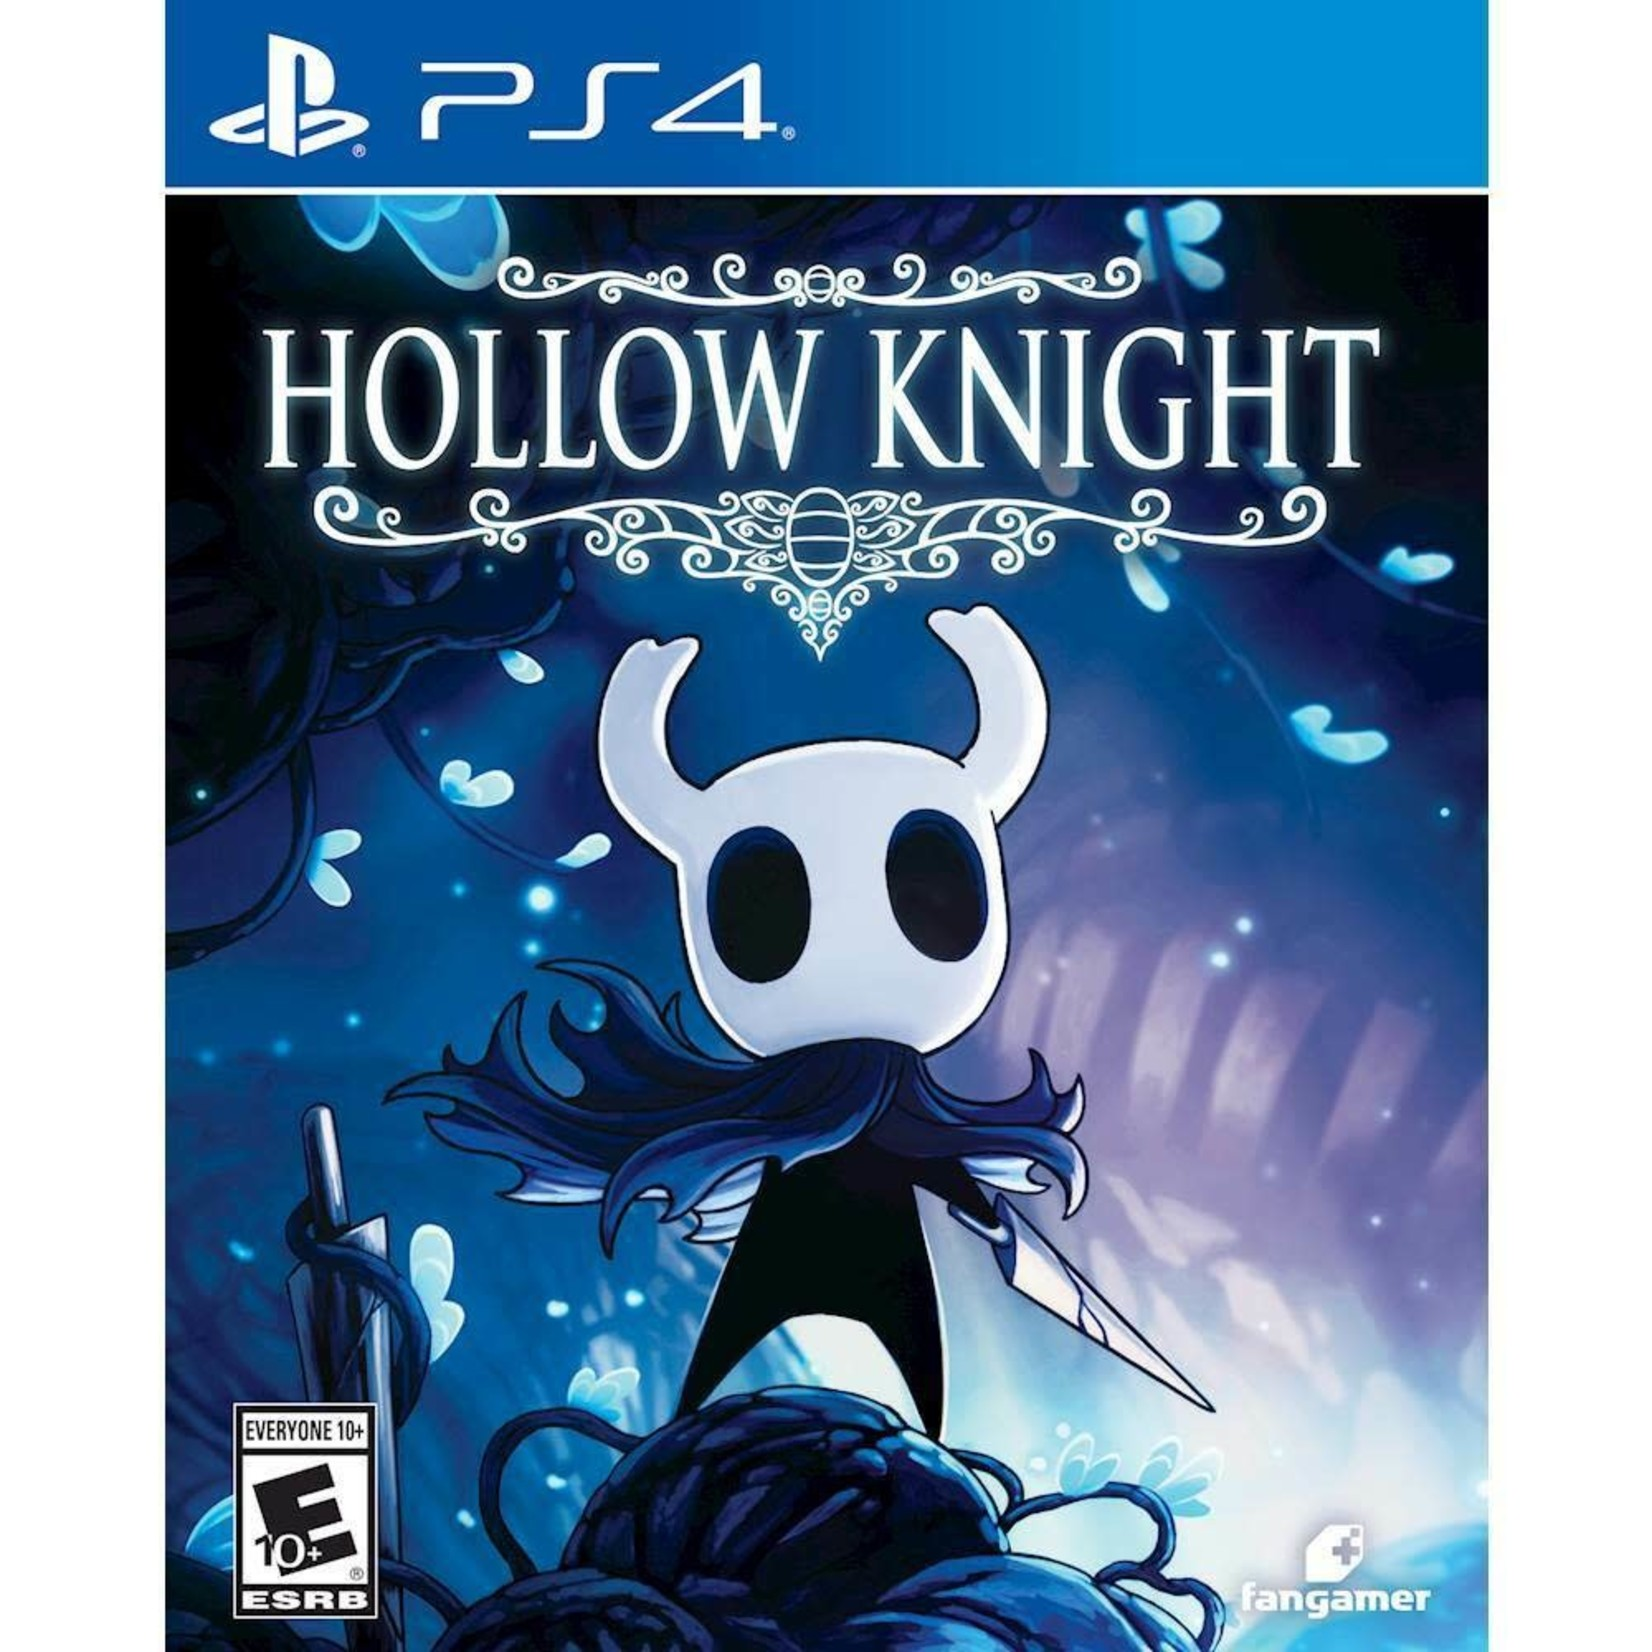 PS4-HOLLOW KNIGHT